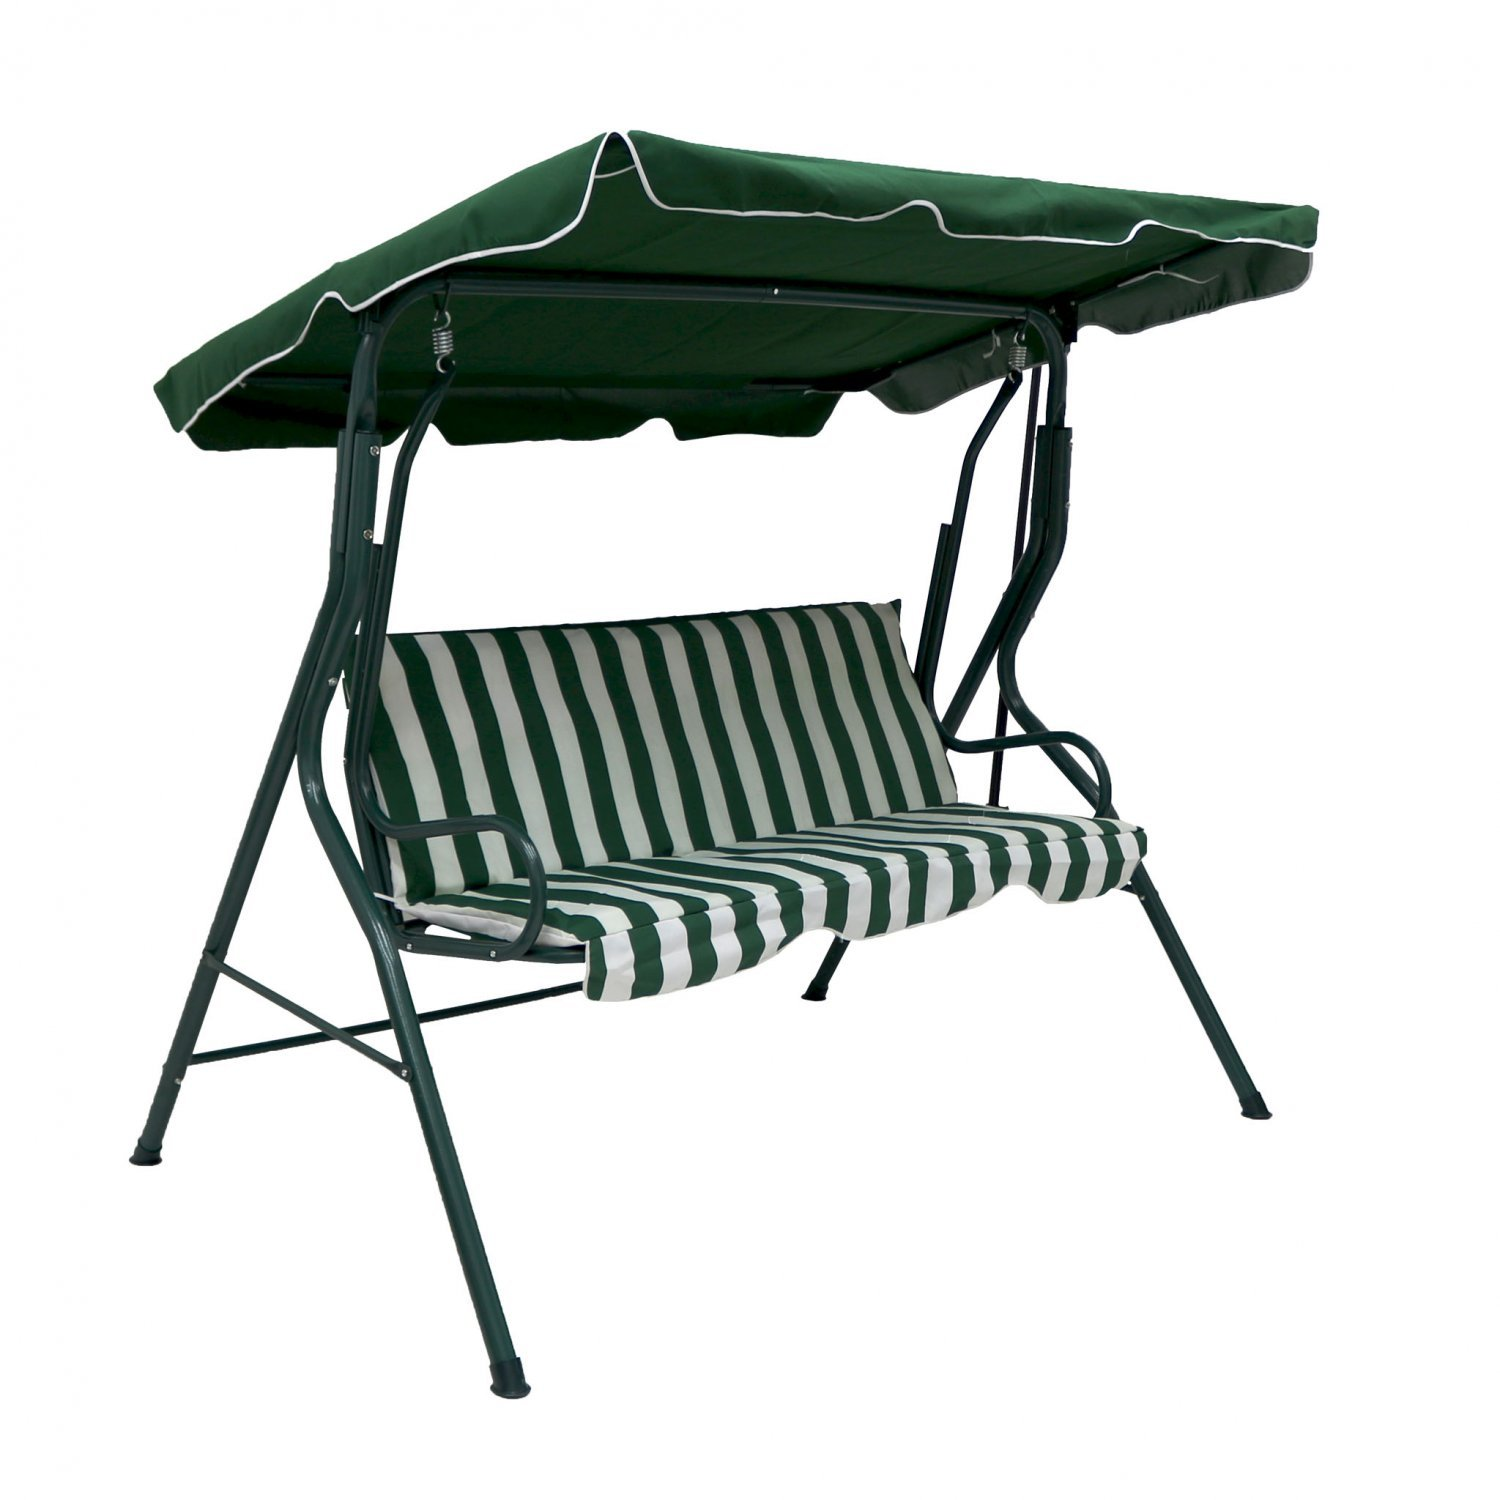 outdoor hammock chair set swing bench seater new seat details lounger itm person garden buy about swinging for